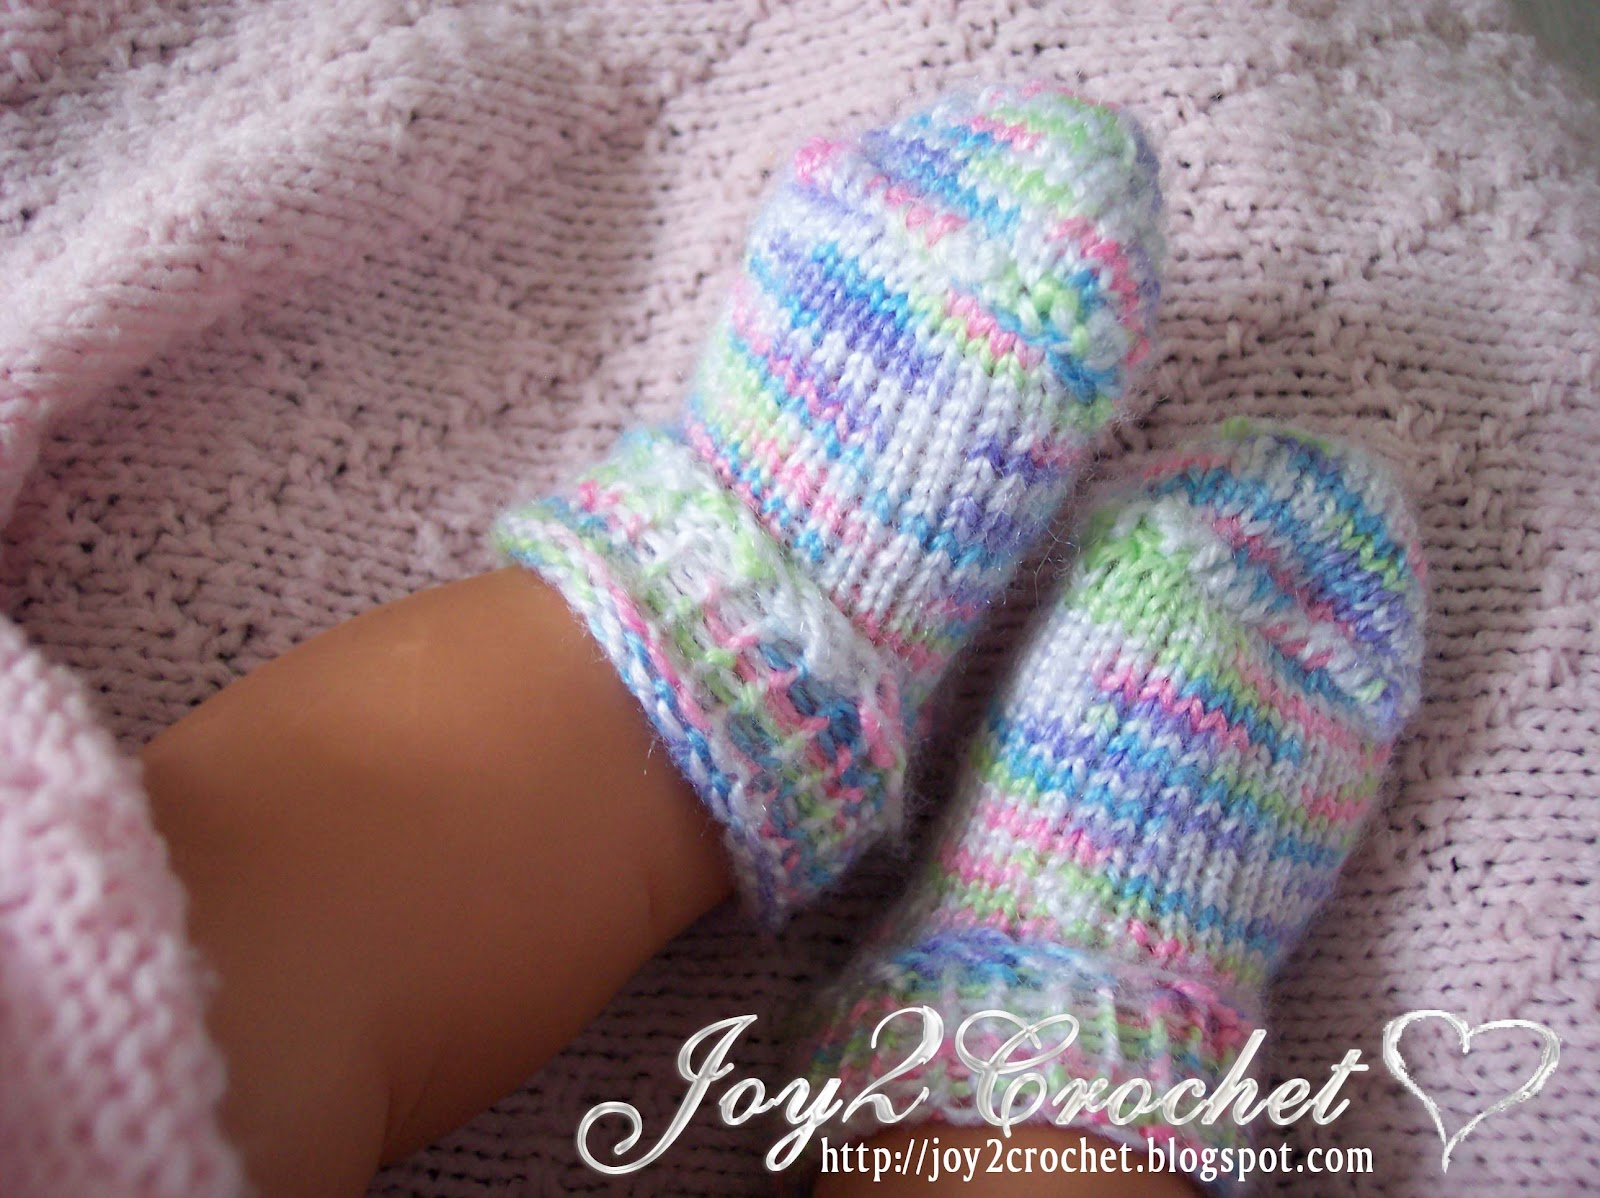 Free Knitting Pattern For Baby Headband : Joy 2 Crochet: KB Adjustable Sock Knitting Loom